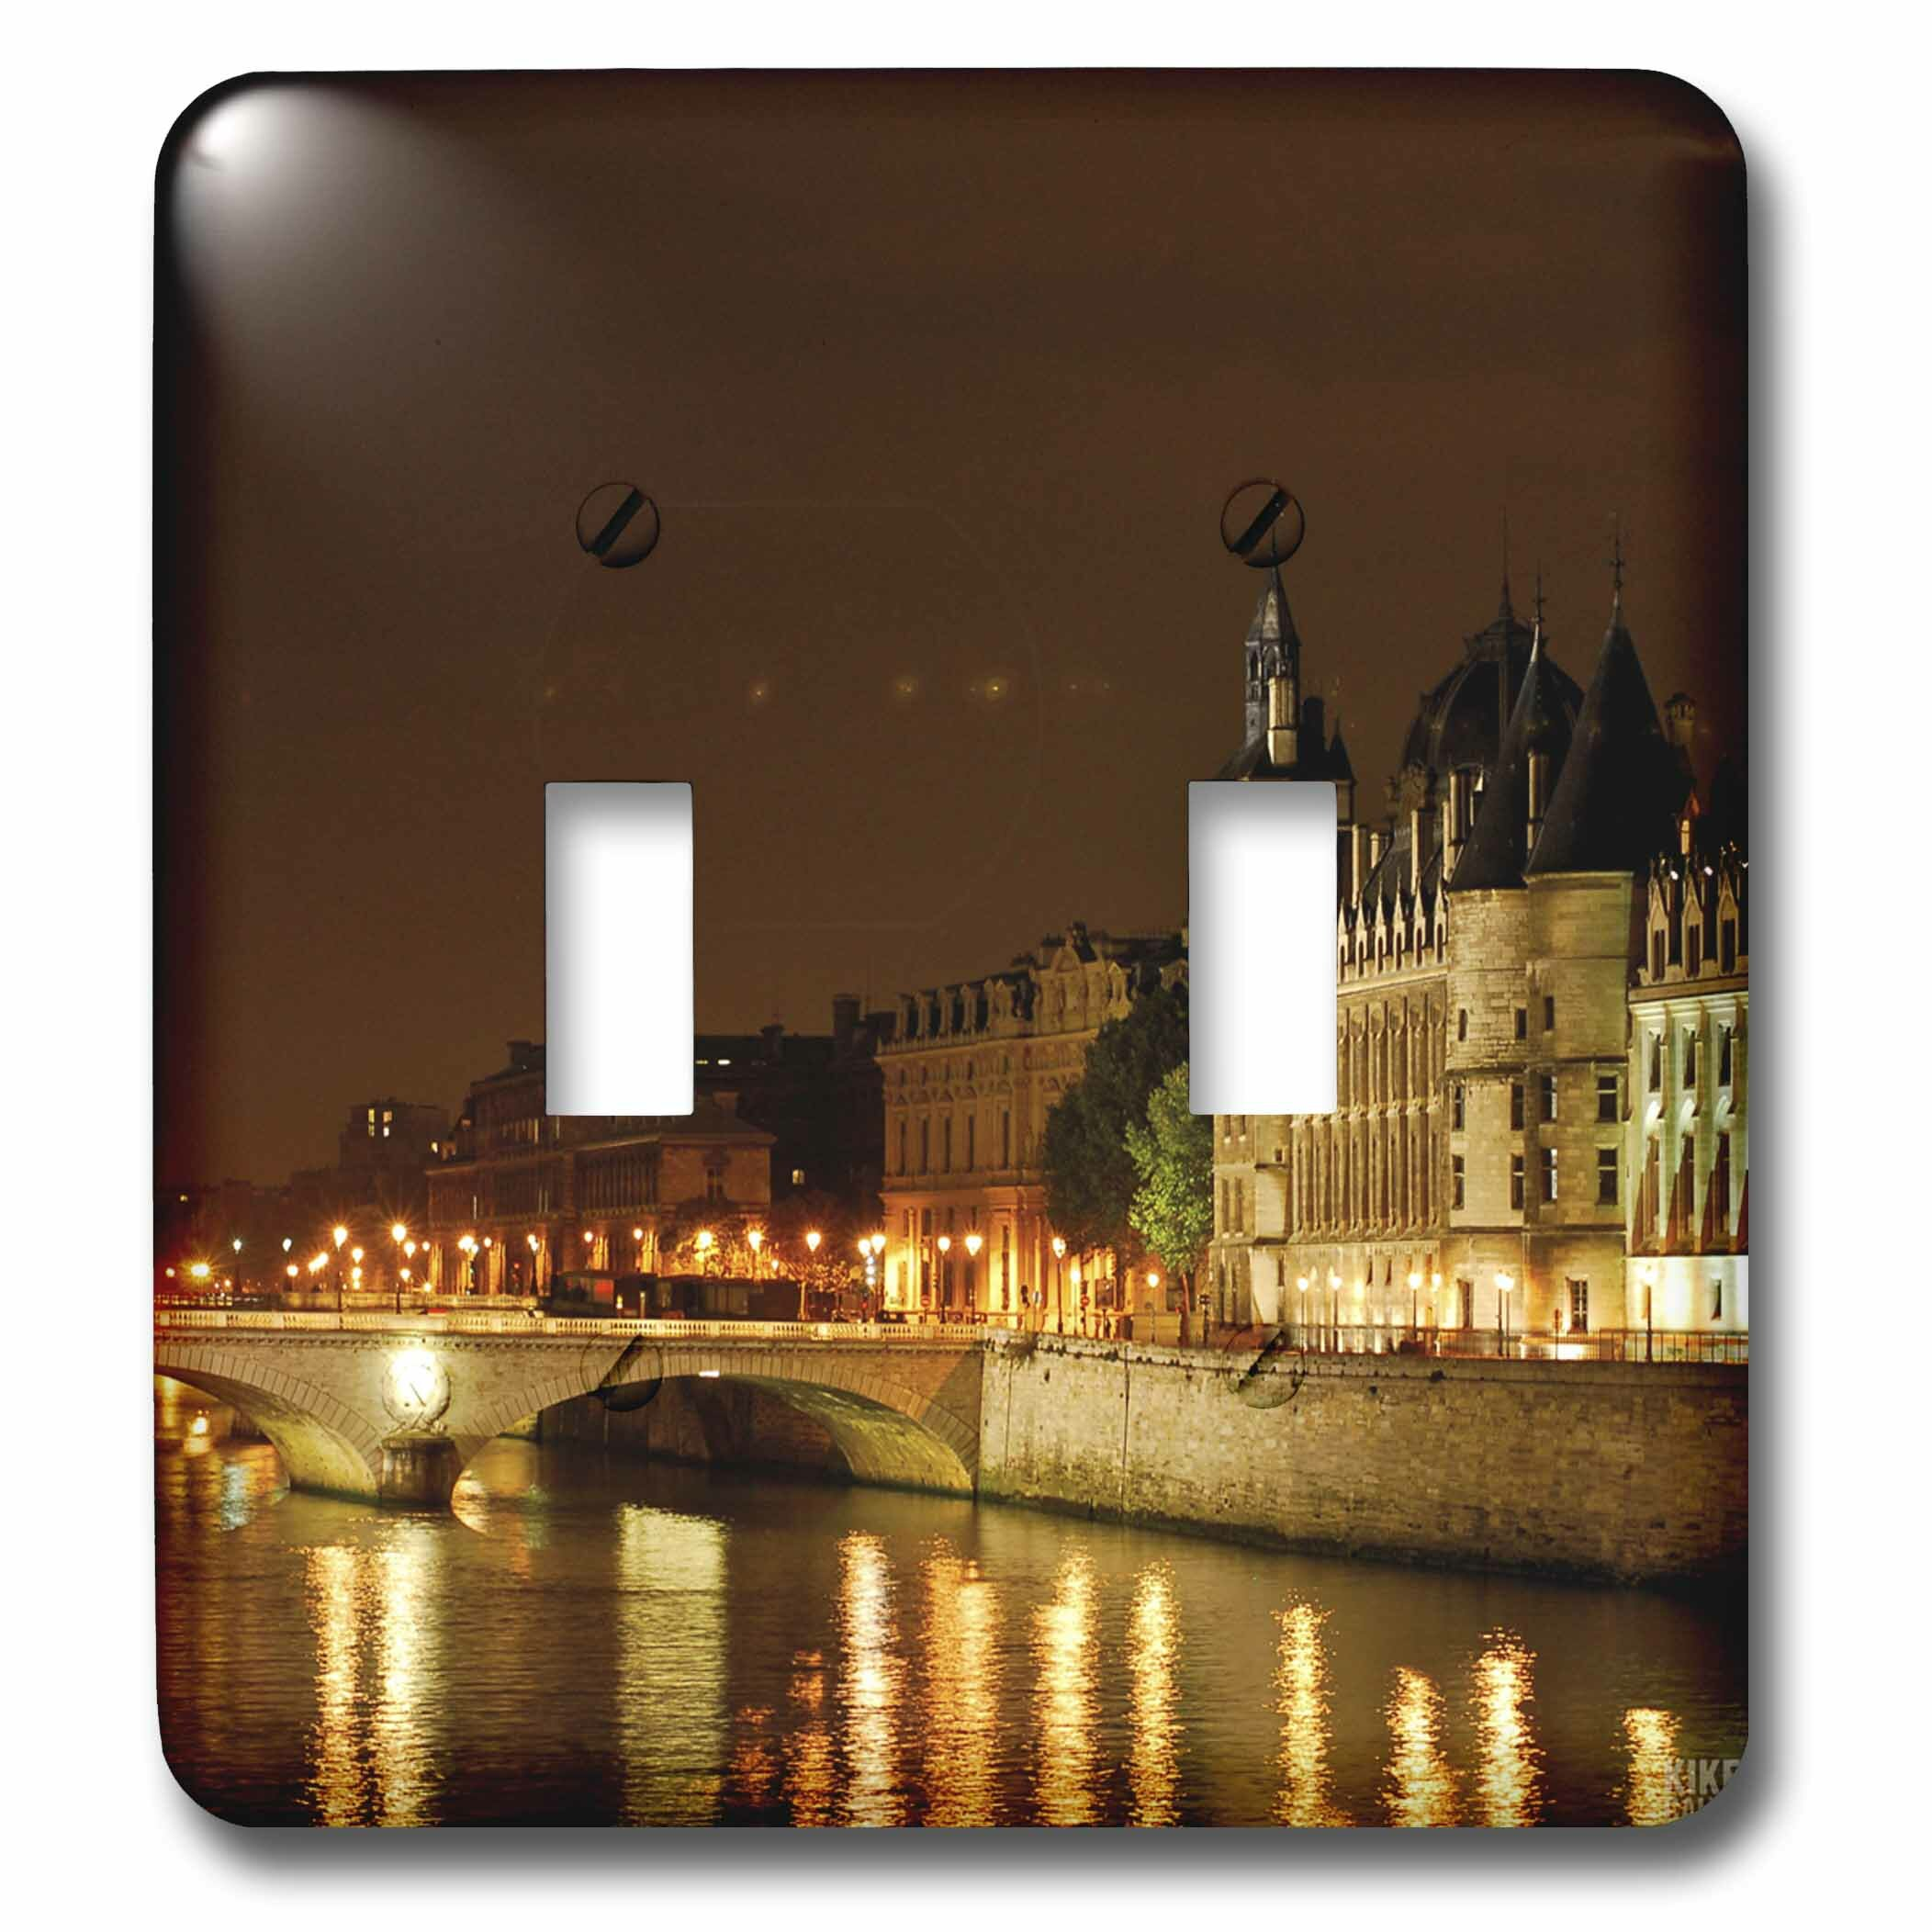 3drose Paris And The Seine River At Night 2 Gang Toggle Light Switch Wall Plate Wayfair